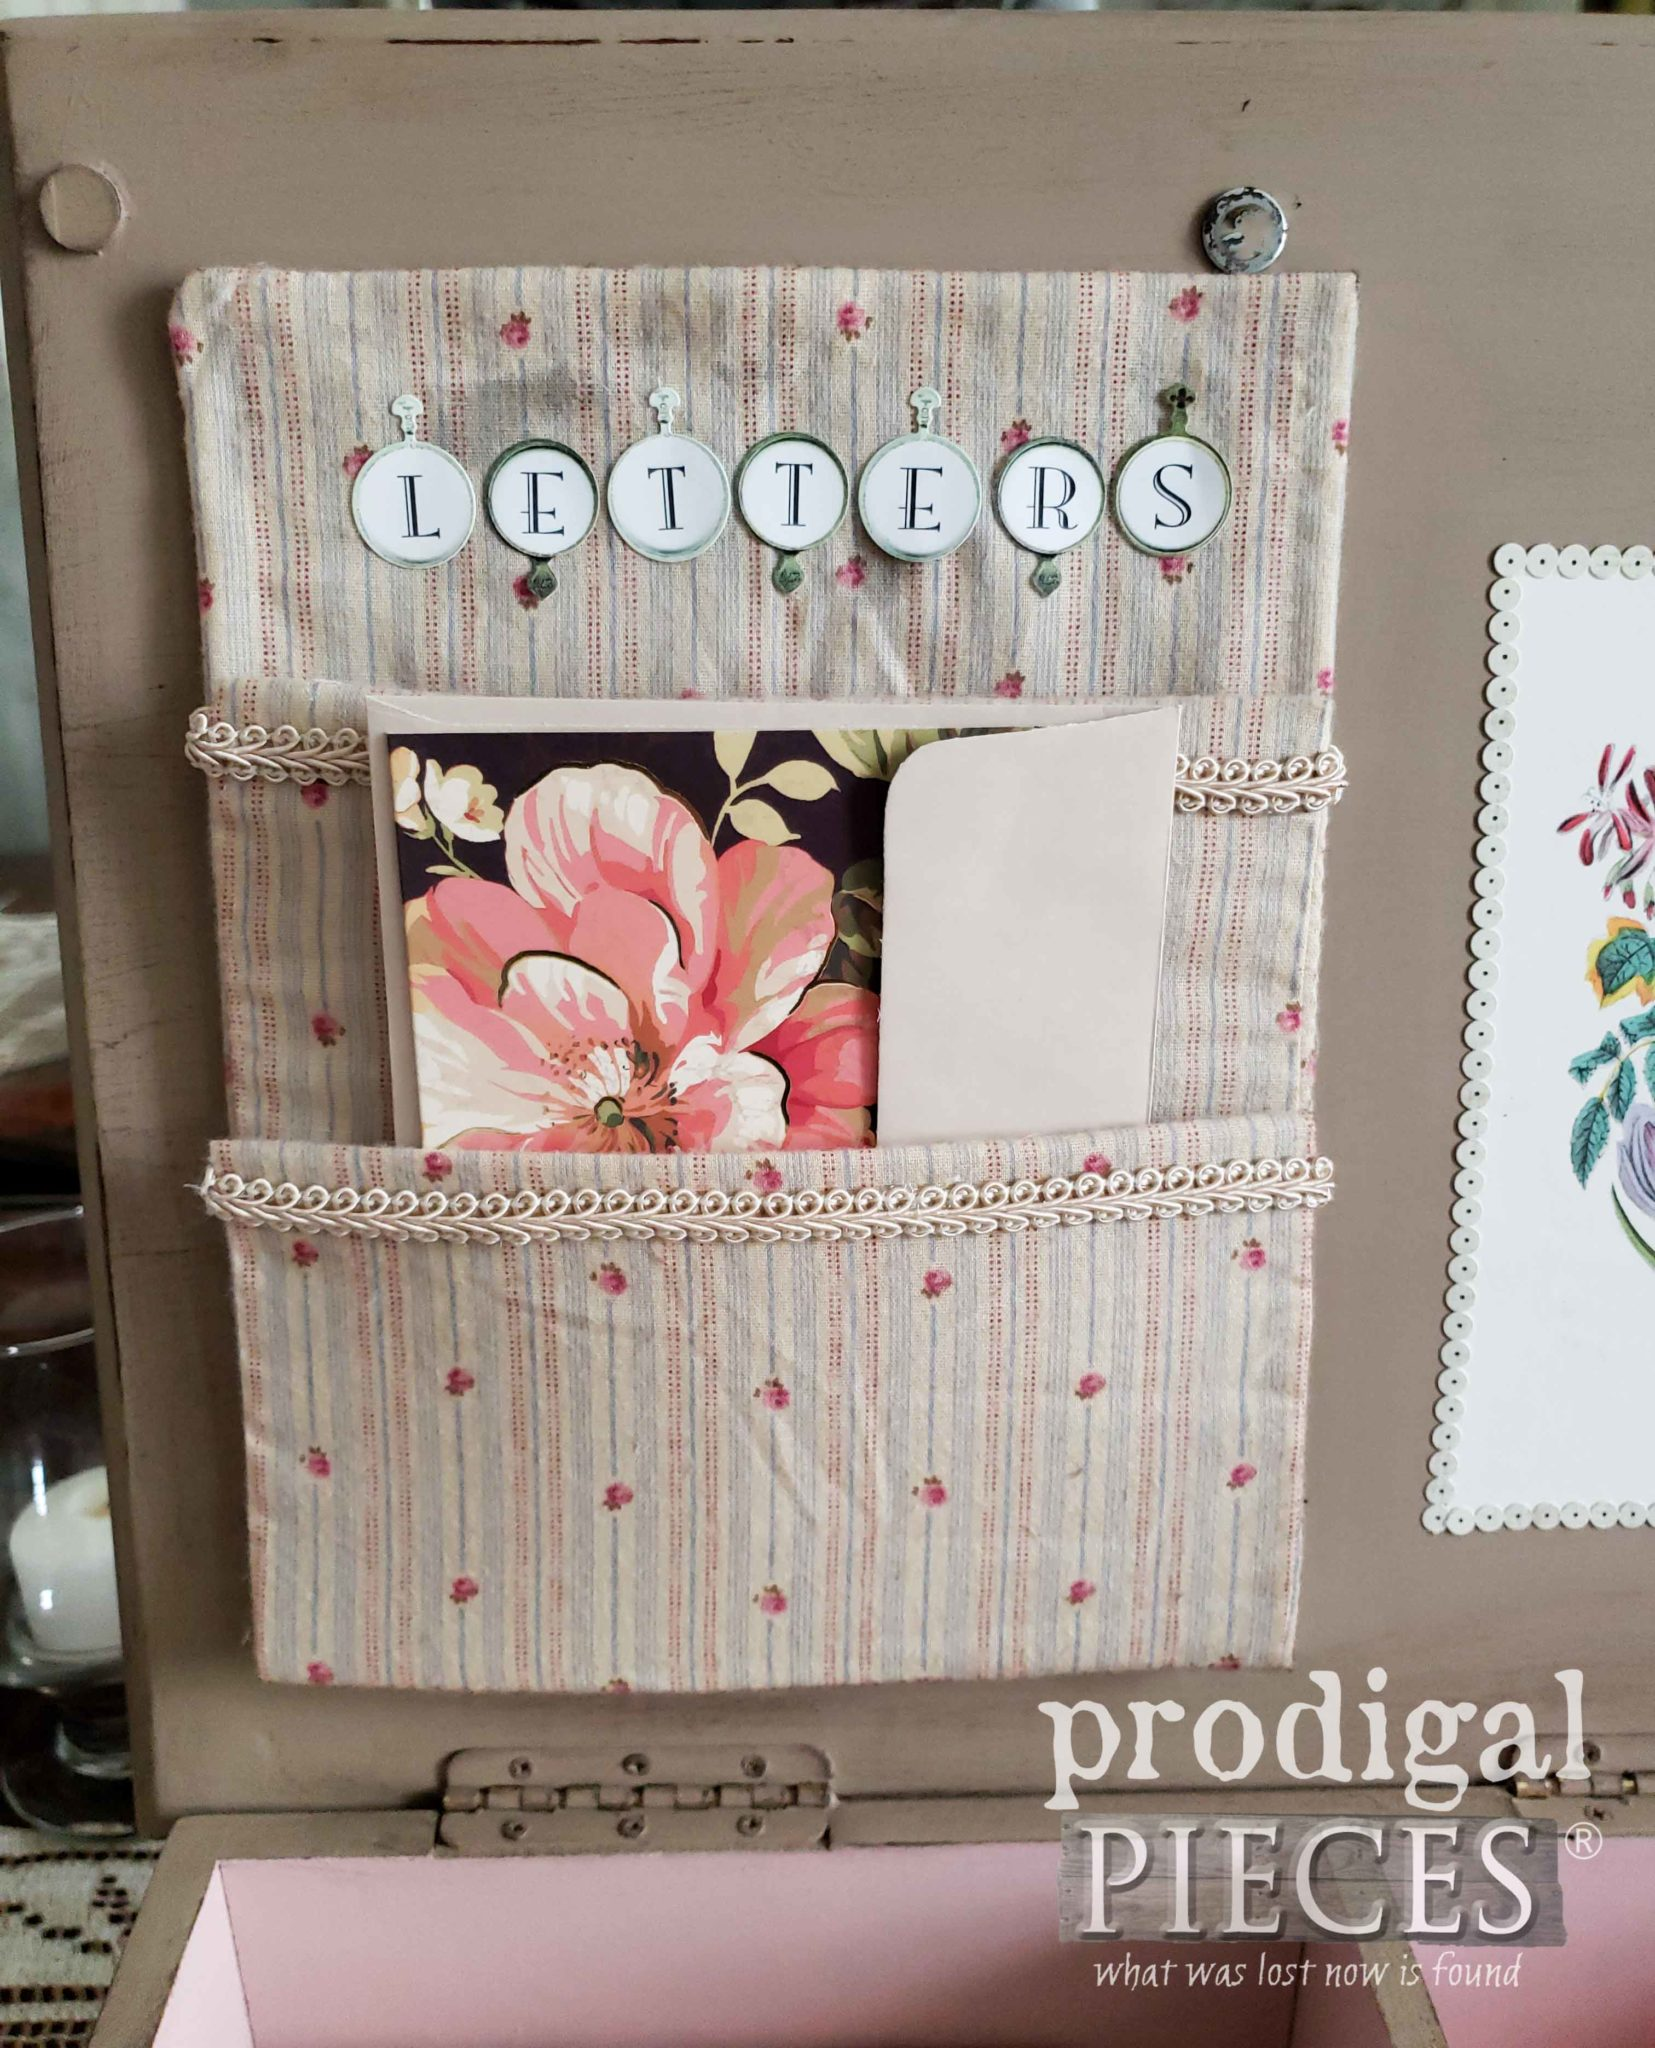 DIY Letter Holder for Keepsake Box by Prodigal Pieces | prodigalpieces.com #prodigalpieces